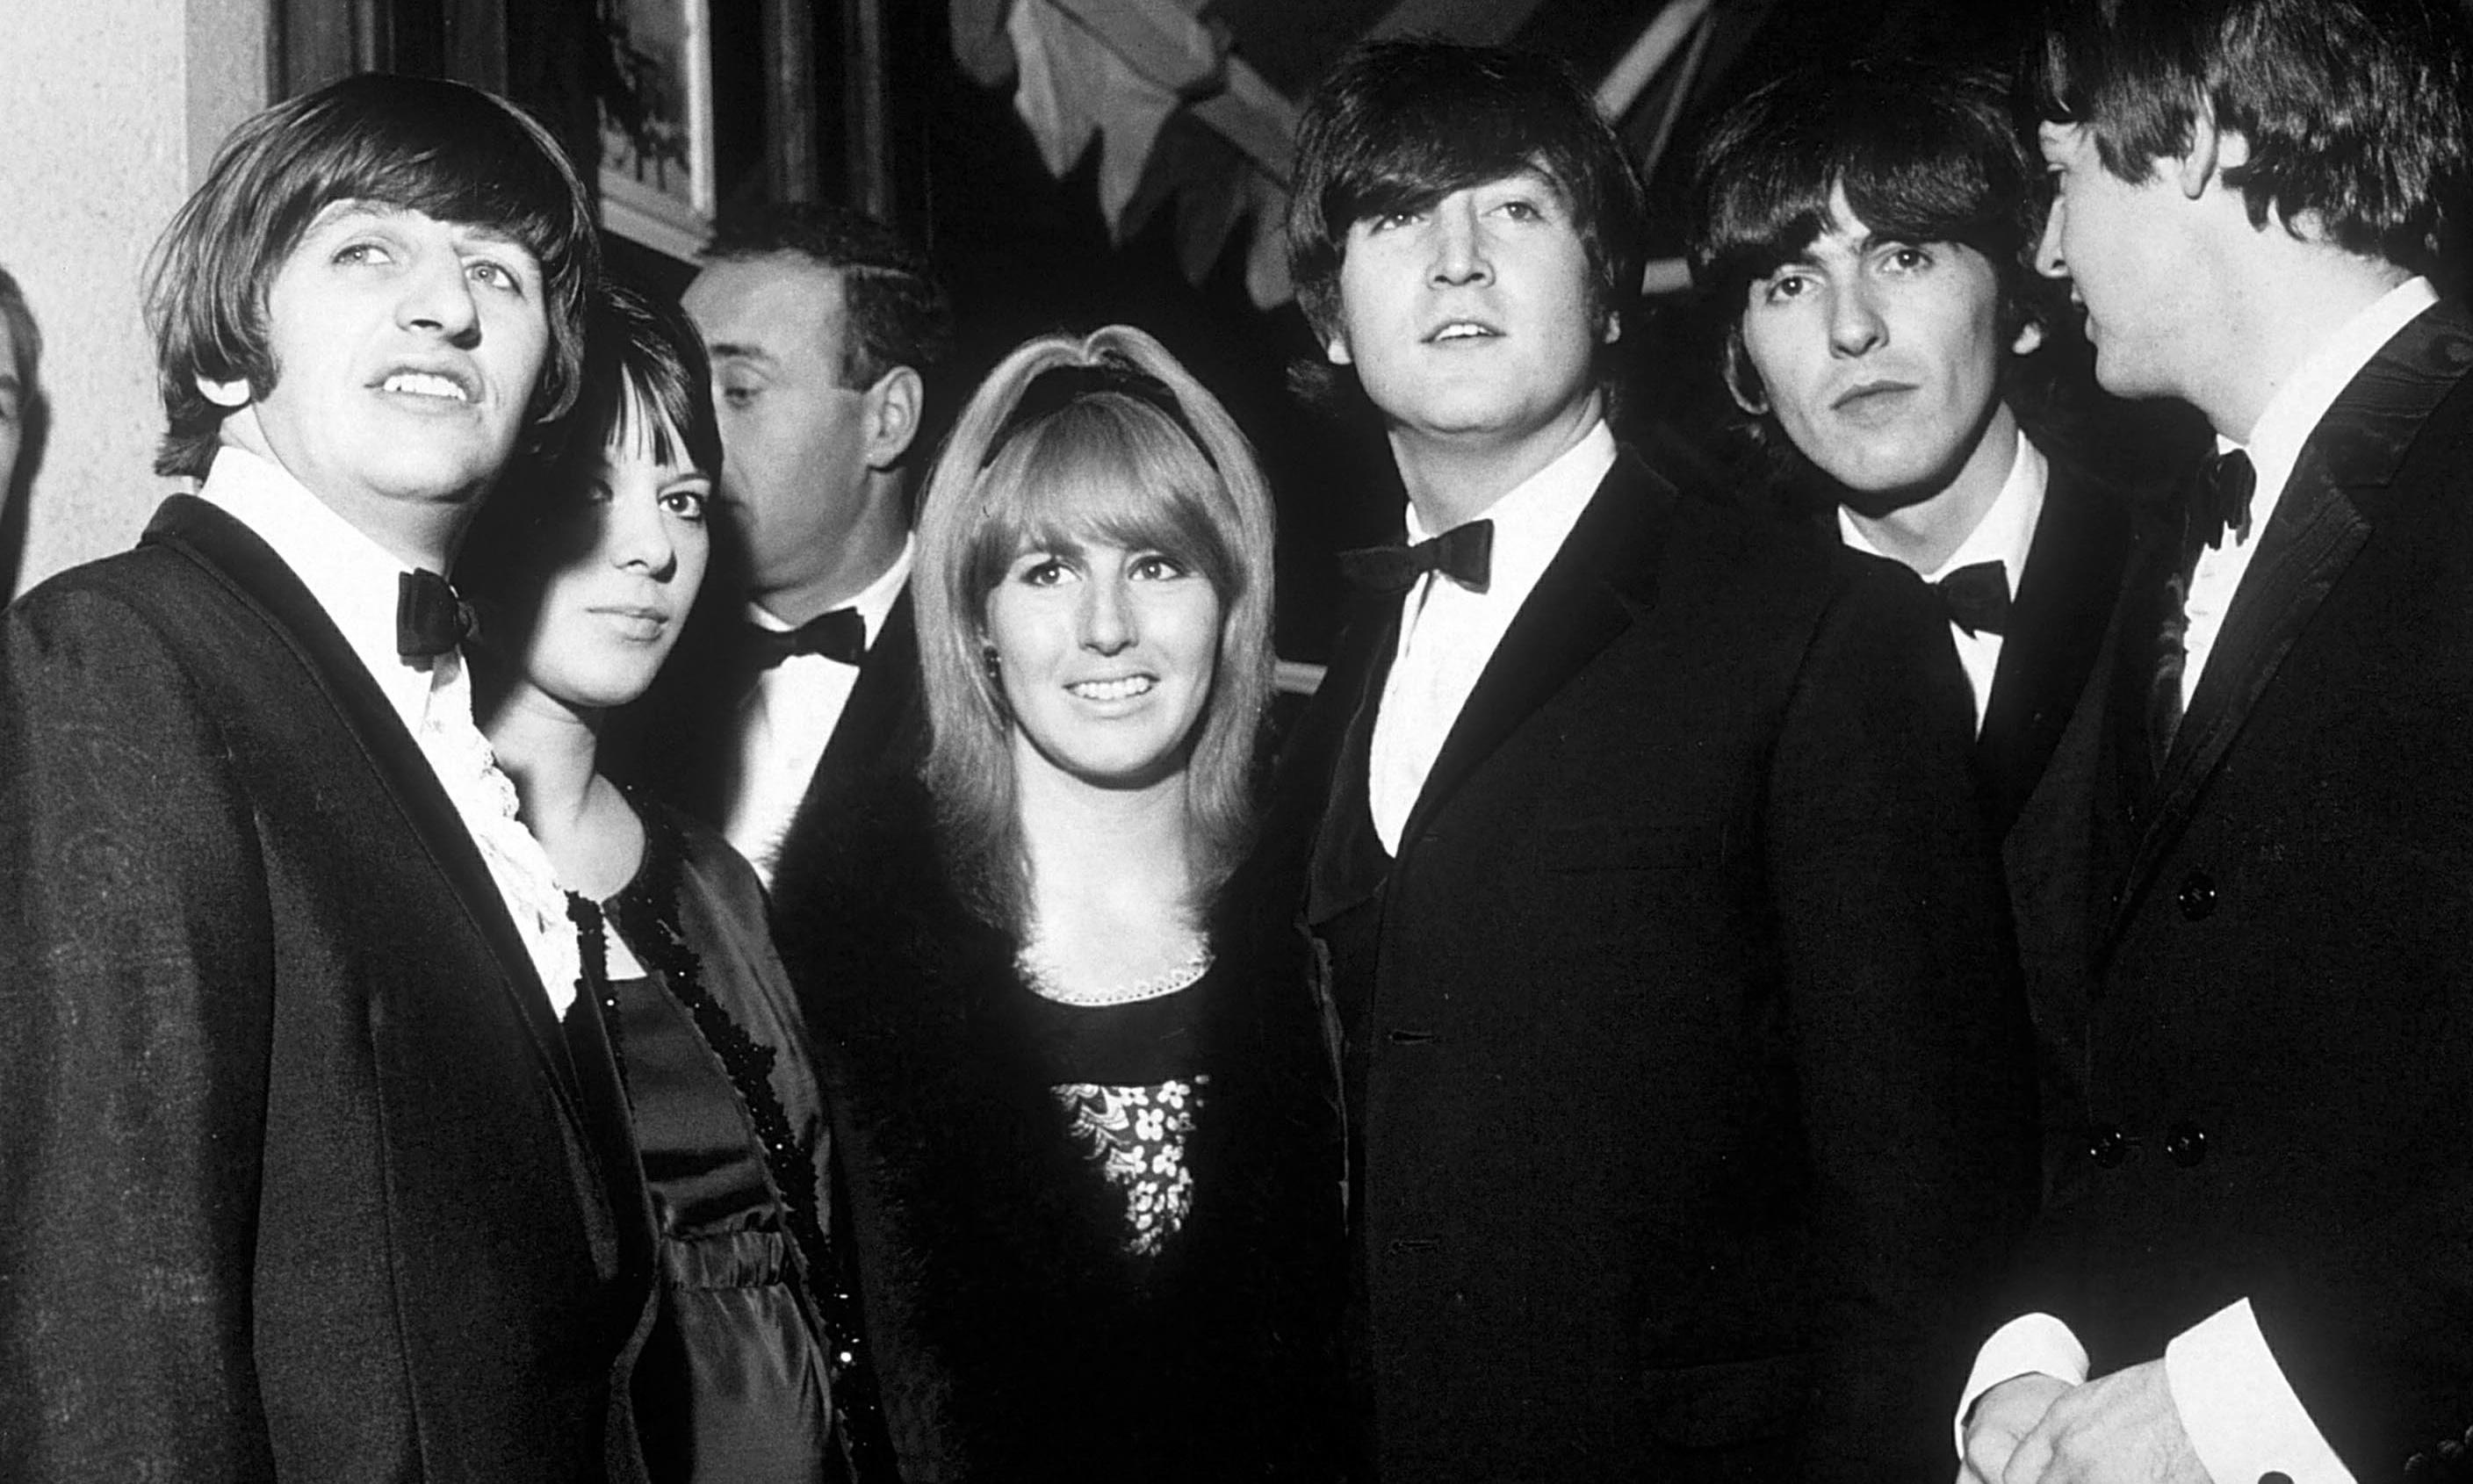 The fifth Beatle? Cynthia Lennon finally wins her place in pop history